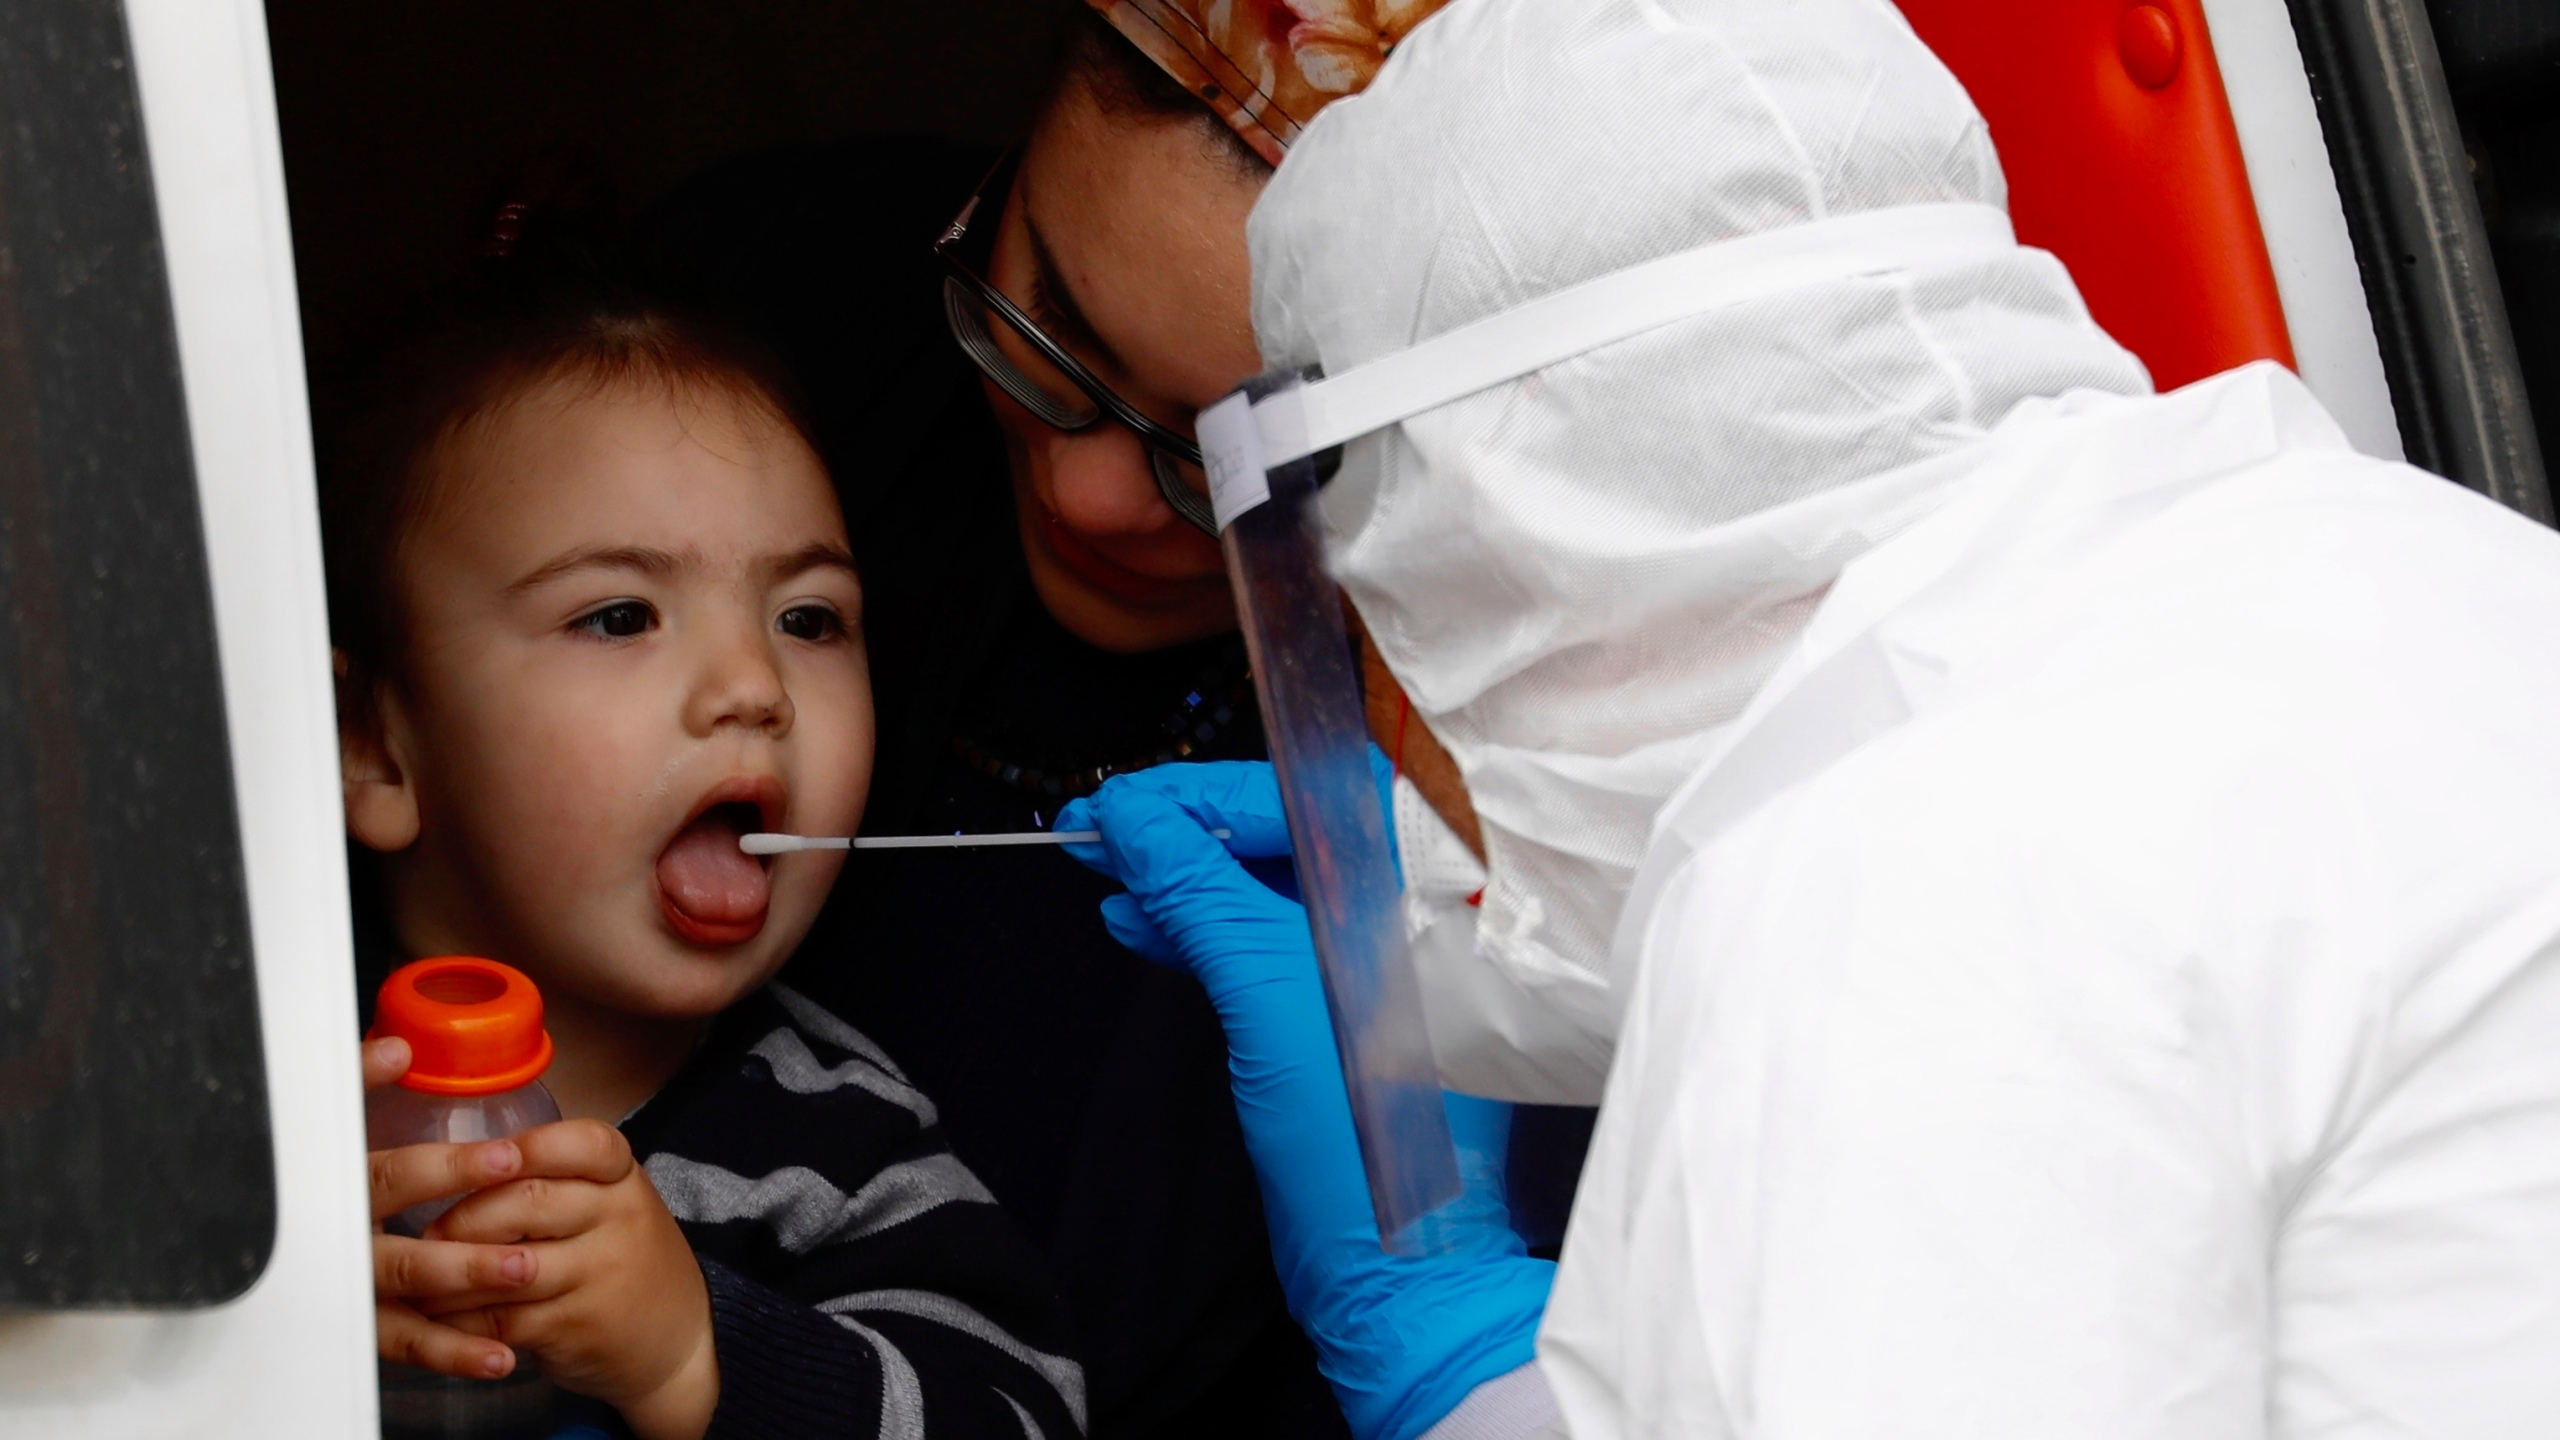 An ultra-Orthodox Jewish boy receives a COVID-19 test from medical personnel wearing protective gear as part of the government's measures to stop the spread of the coronavirus in the orthodox city of Bnei Brak, a Tel Aviv suburb, in Israel, Tuesday, March 31, 2020. (AP Photo/Ariel Schalit)